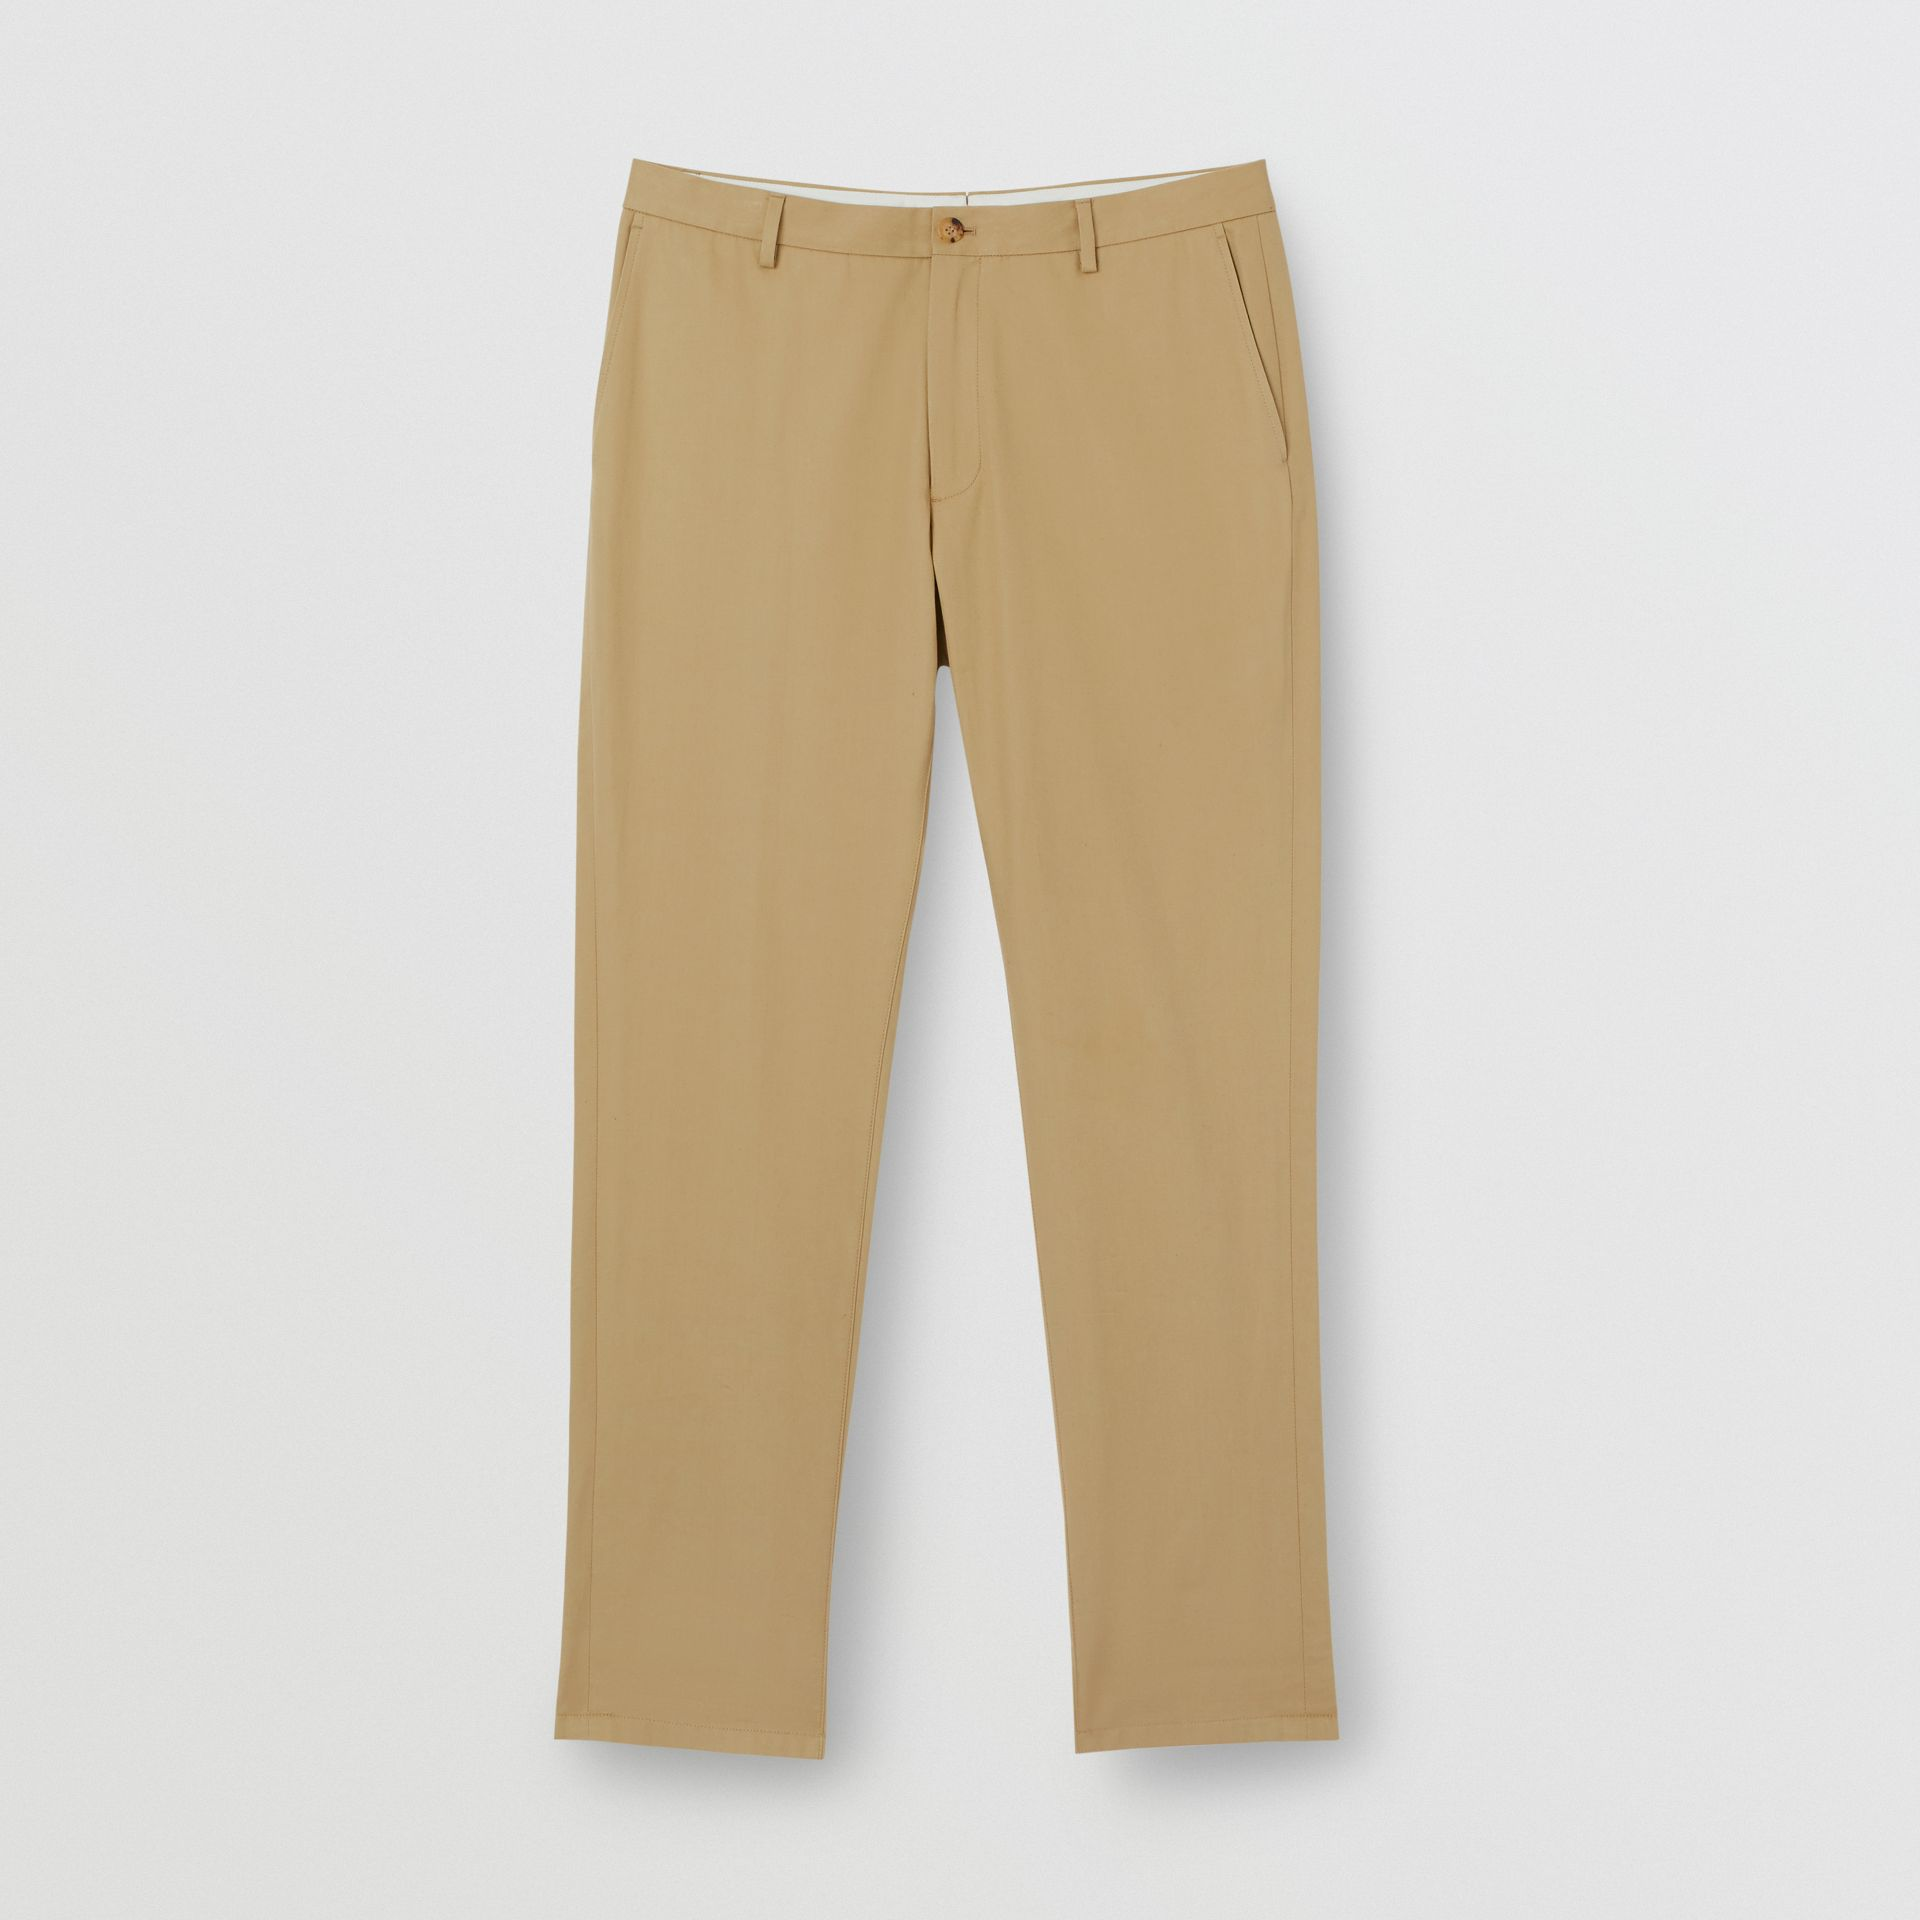 Slim Fit Cotton Chinos in Honey - Men | Burberry Hong Kong S.A.R - gallery image 3